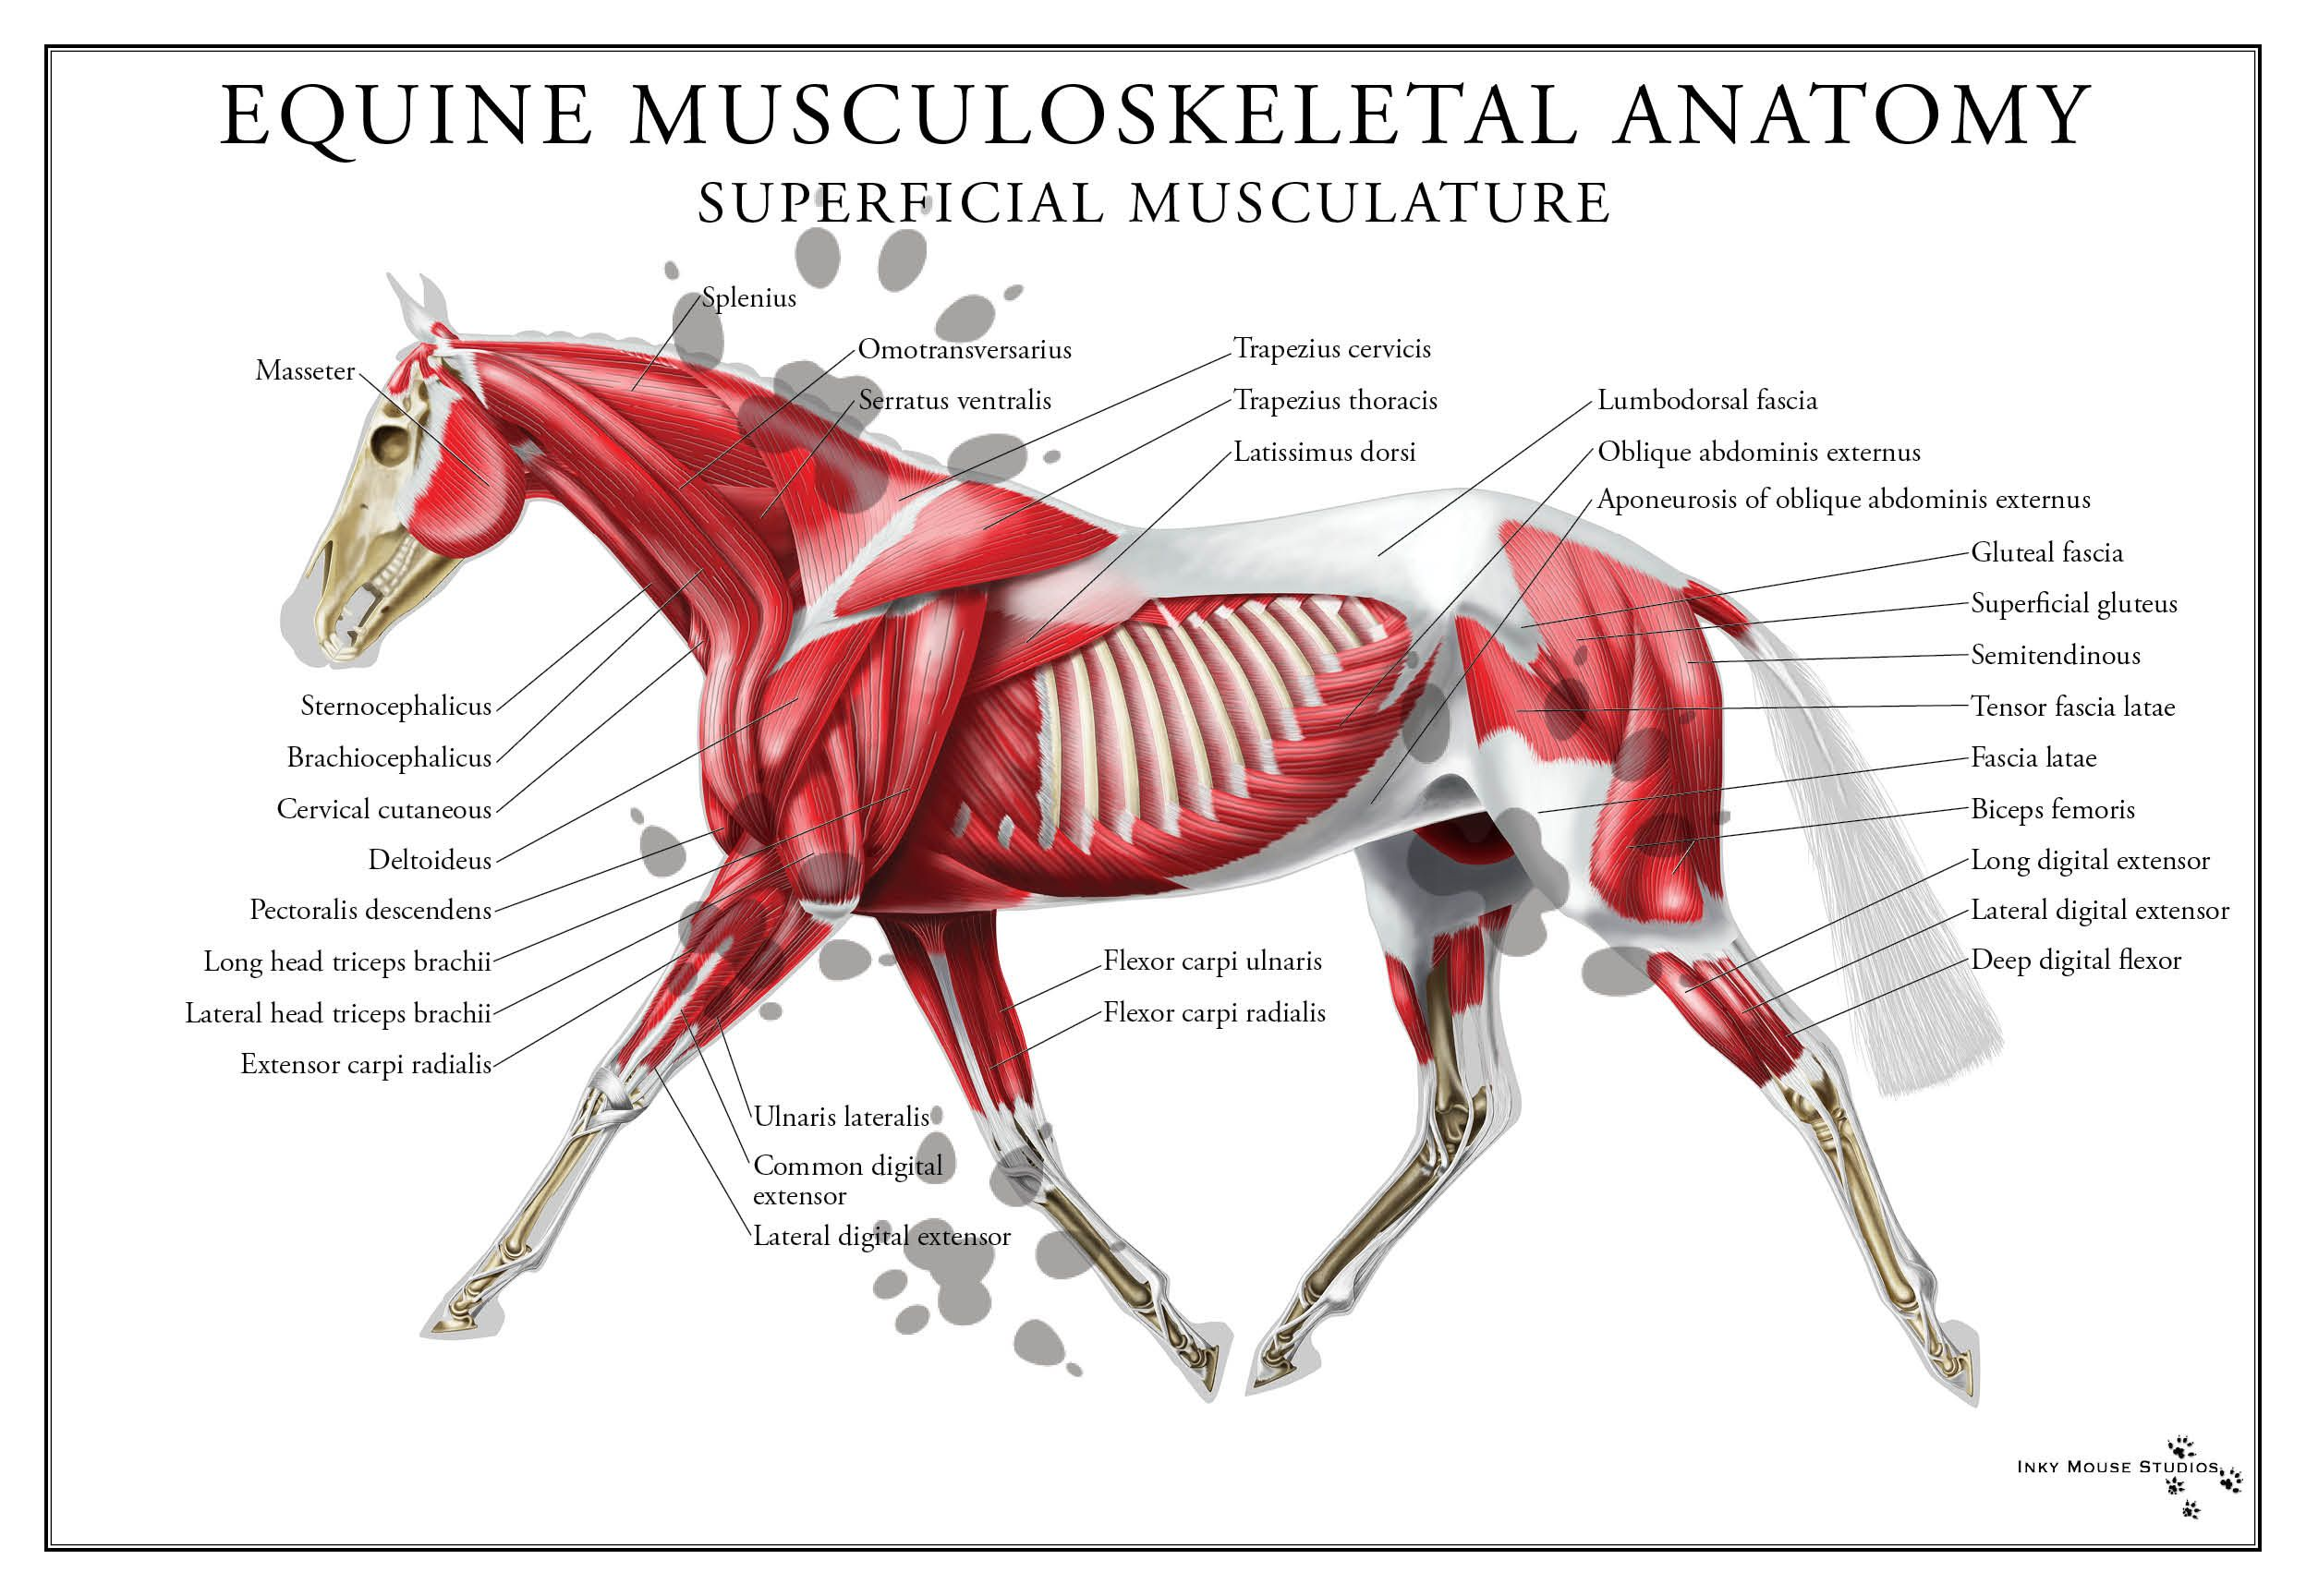 Sistema Muscular Equino | Equine | Pinterest | Muscular system ...